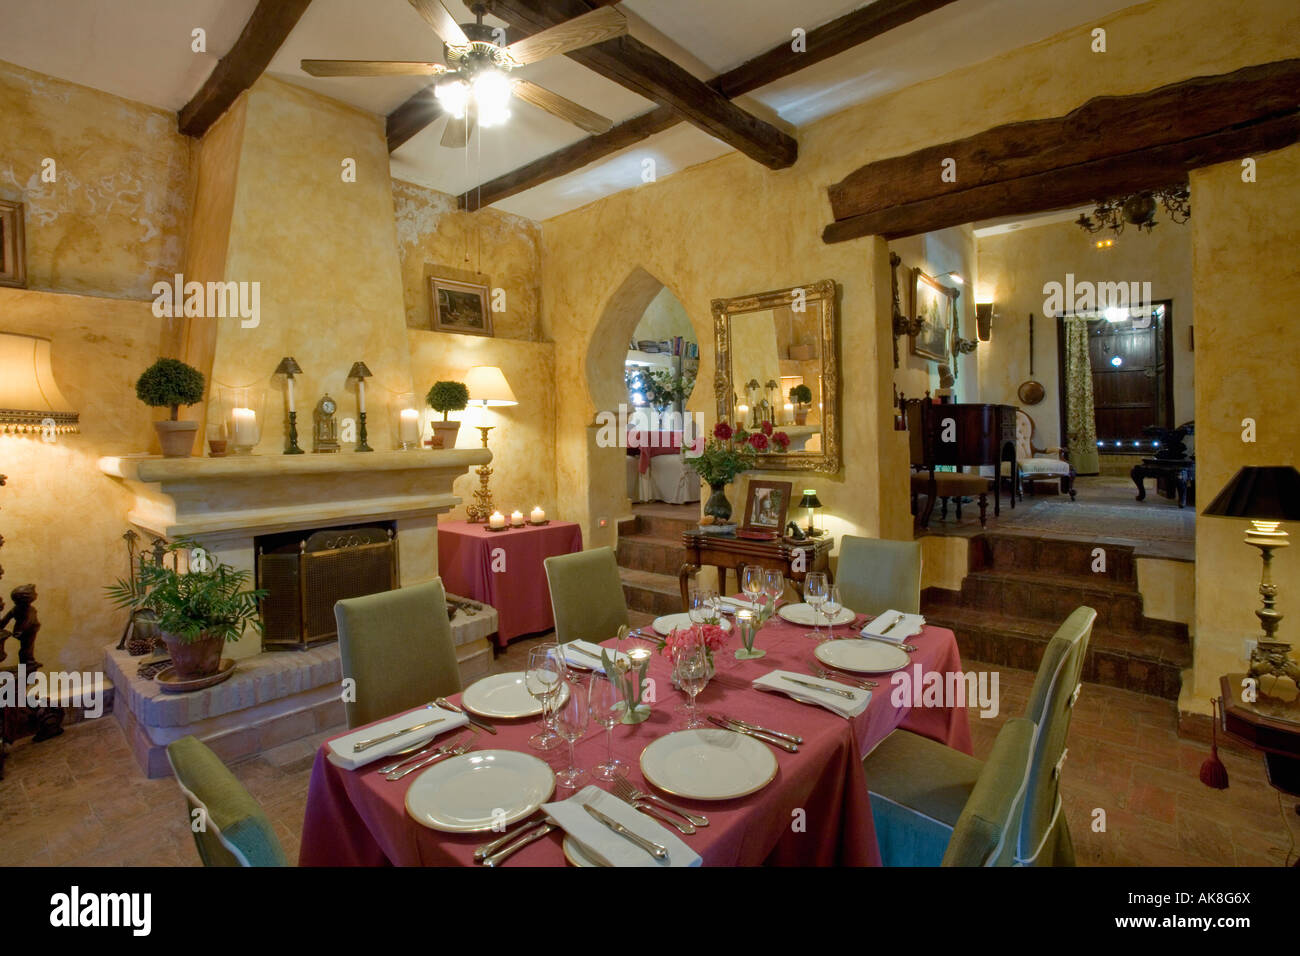 White crockery and red cloth on table in yellow dining room in ...